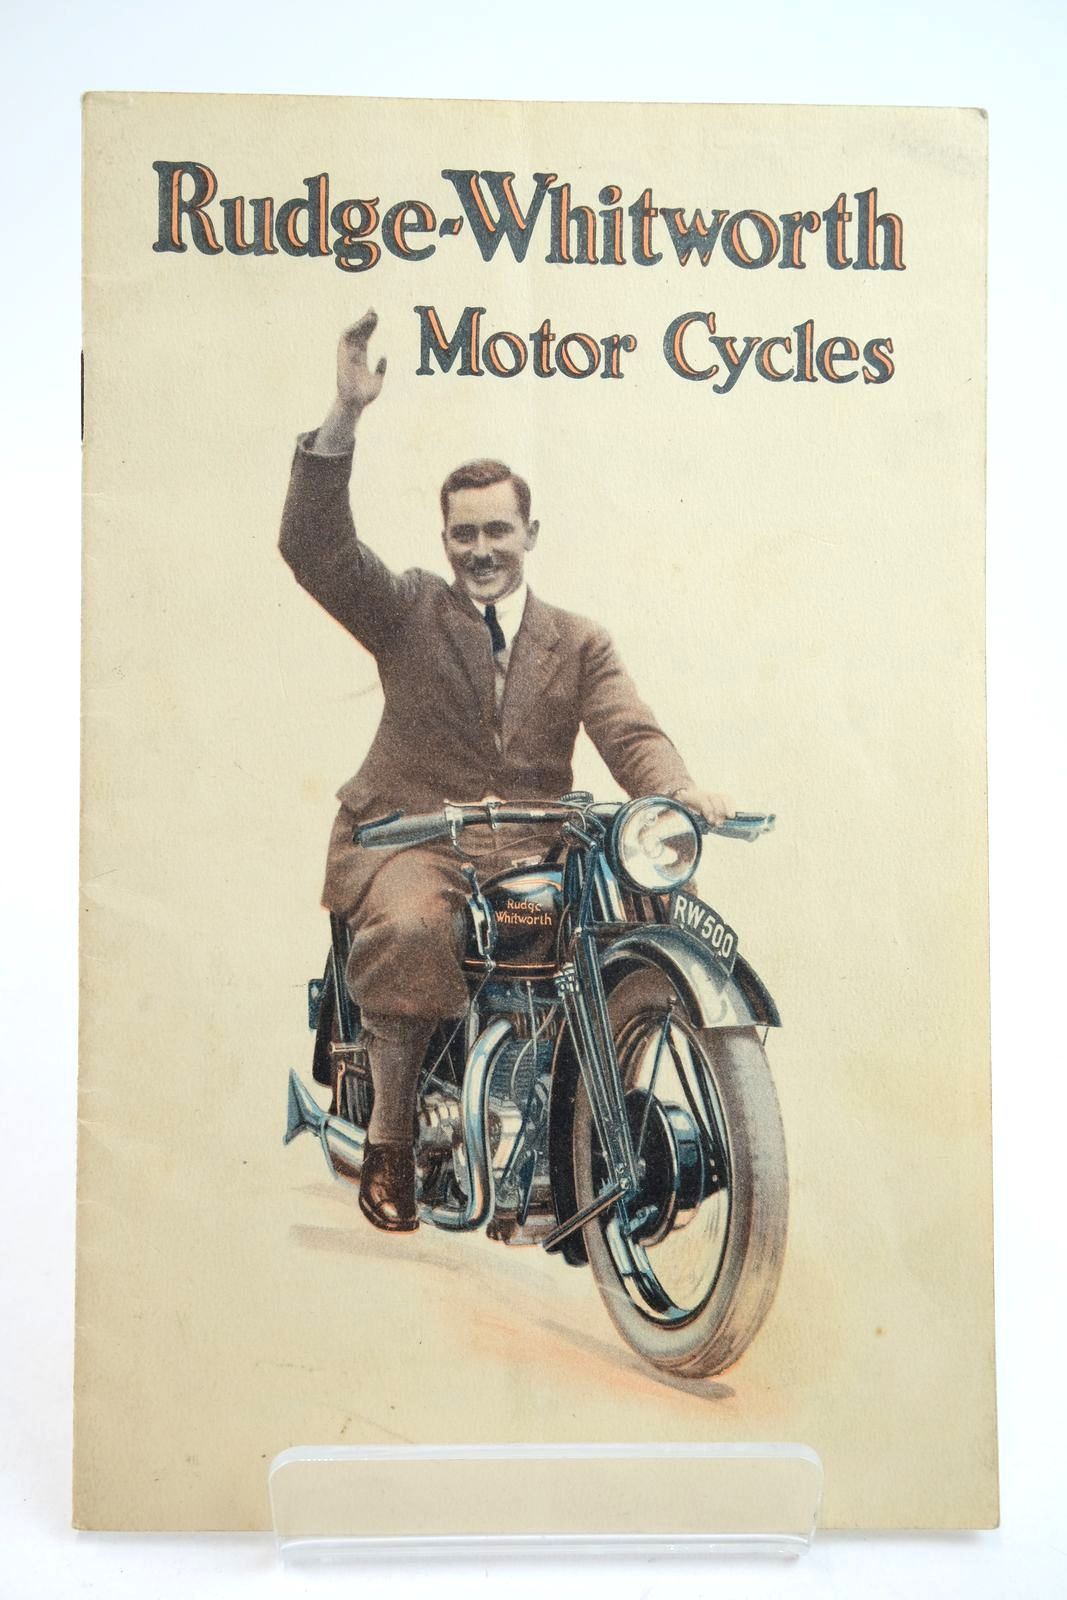 Photo of RUDGE-WHITWORTH 1929 MOTOR CYCLE CATALOGUE published by Rudge-Whitworth Ltd. (STOCK CODE: 2133202)  for sale by Stella & Rose's Books